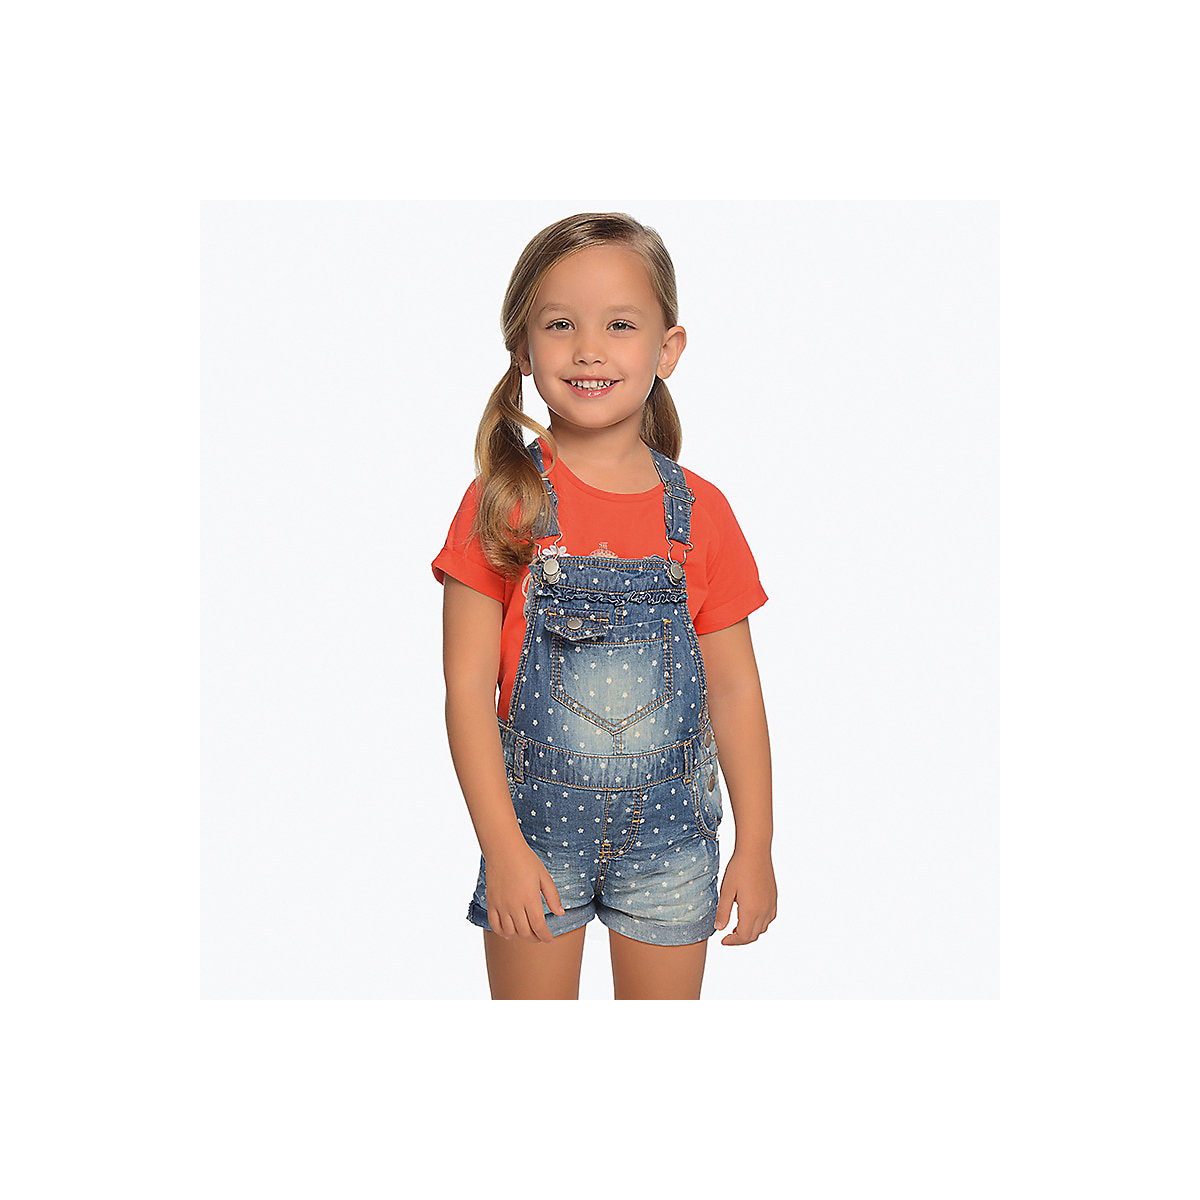 MAYORAL Overalls 10685274 summer Jumpsuit Children clothes Kids for girls overall jumpsuits overall junona overall